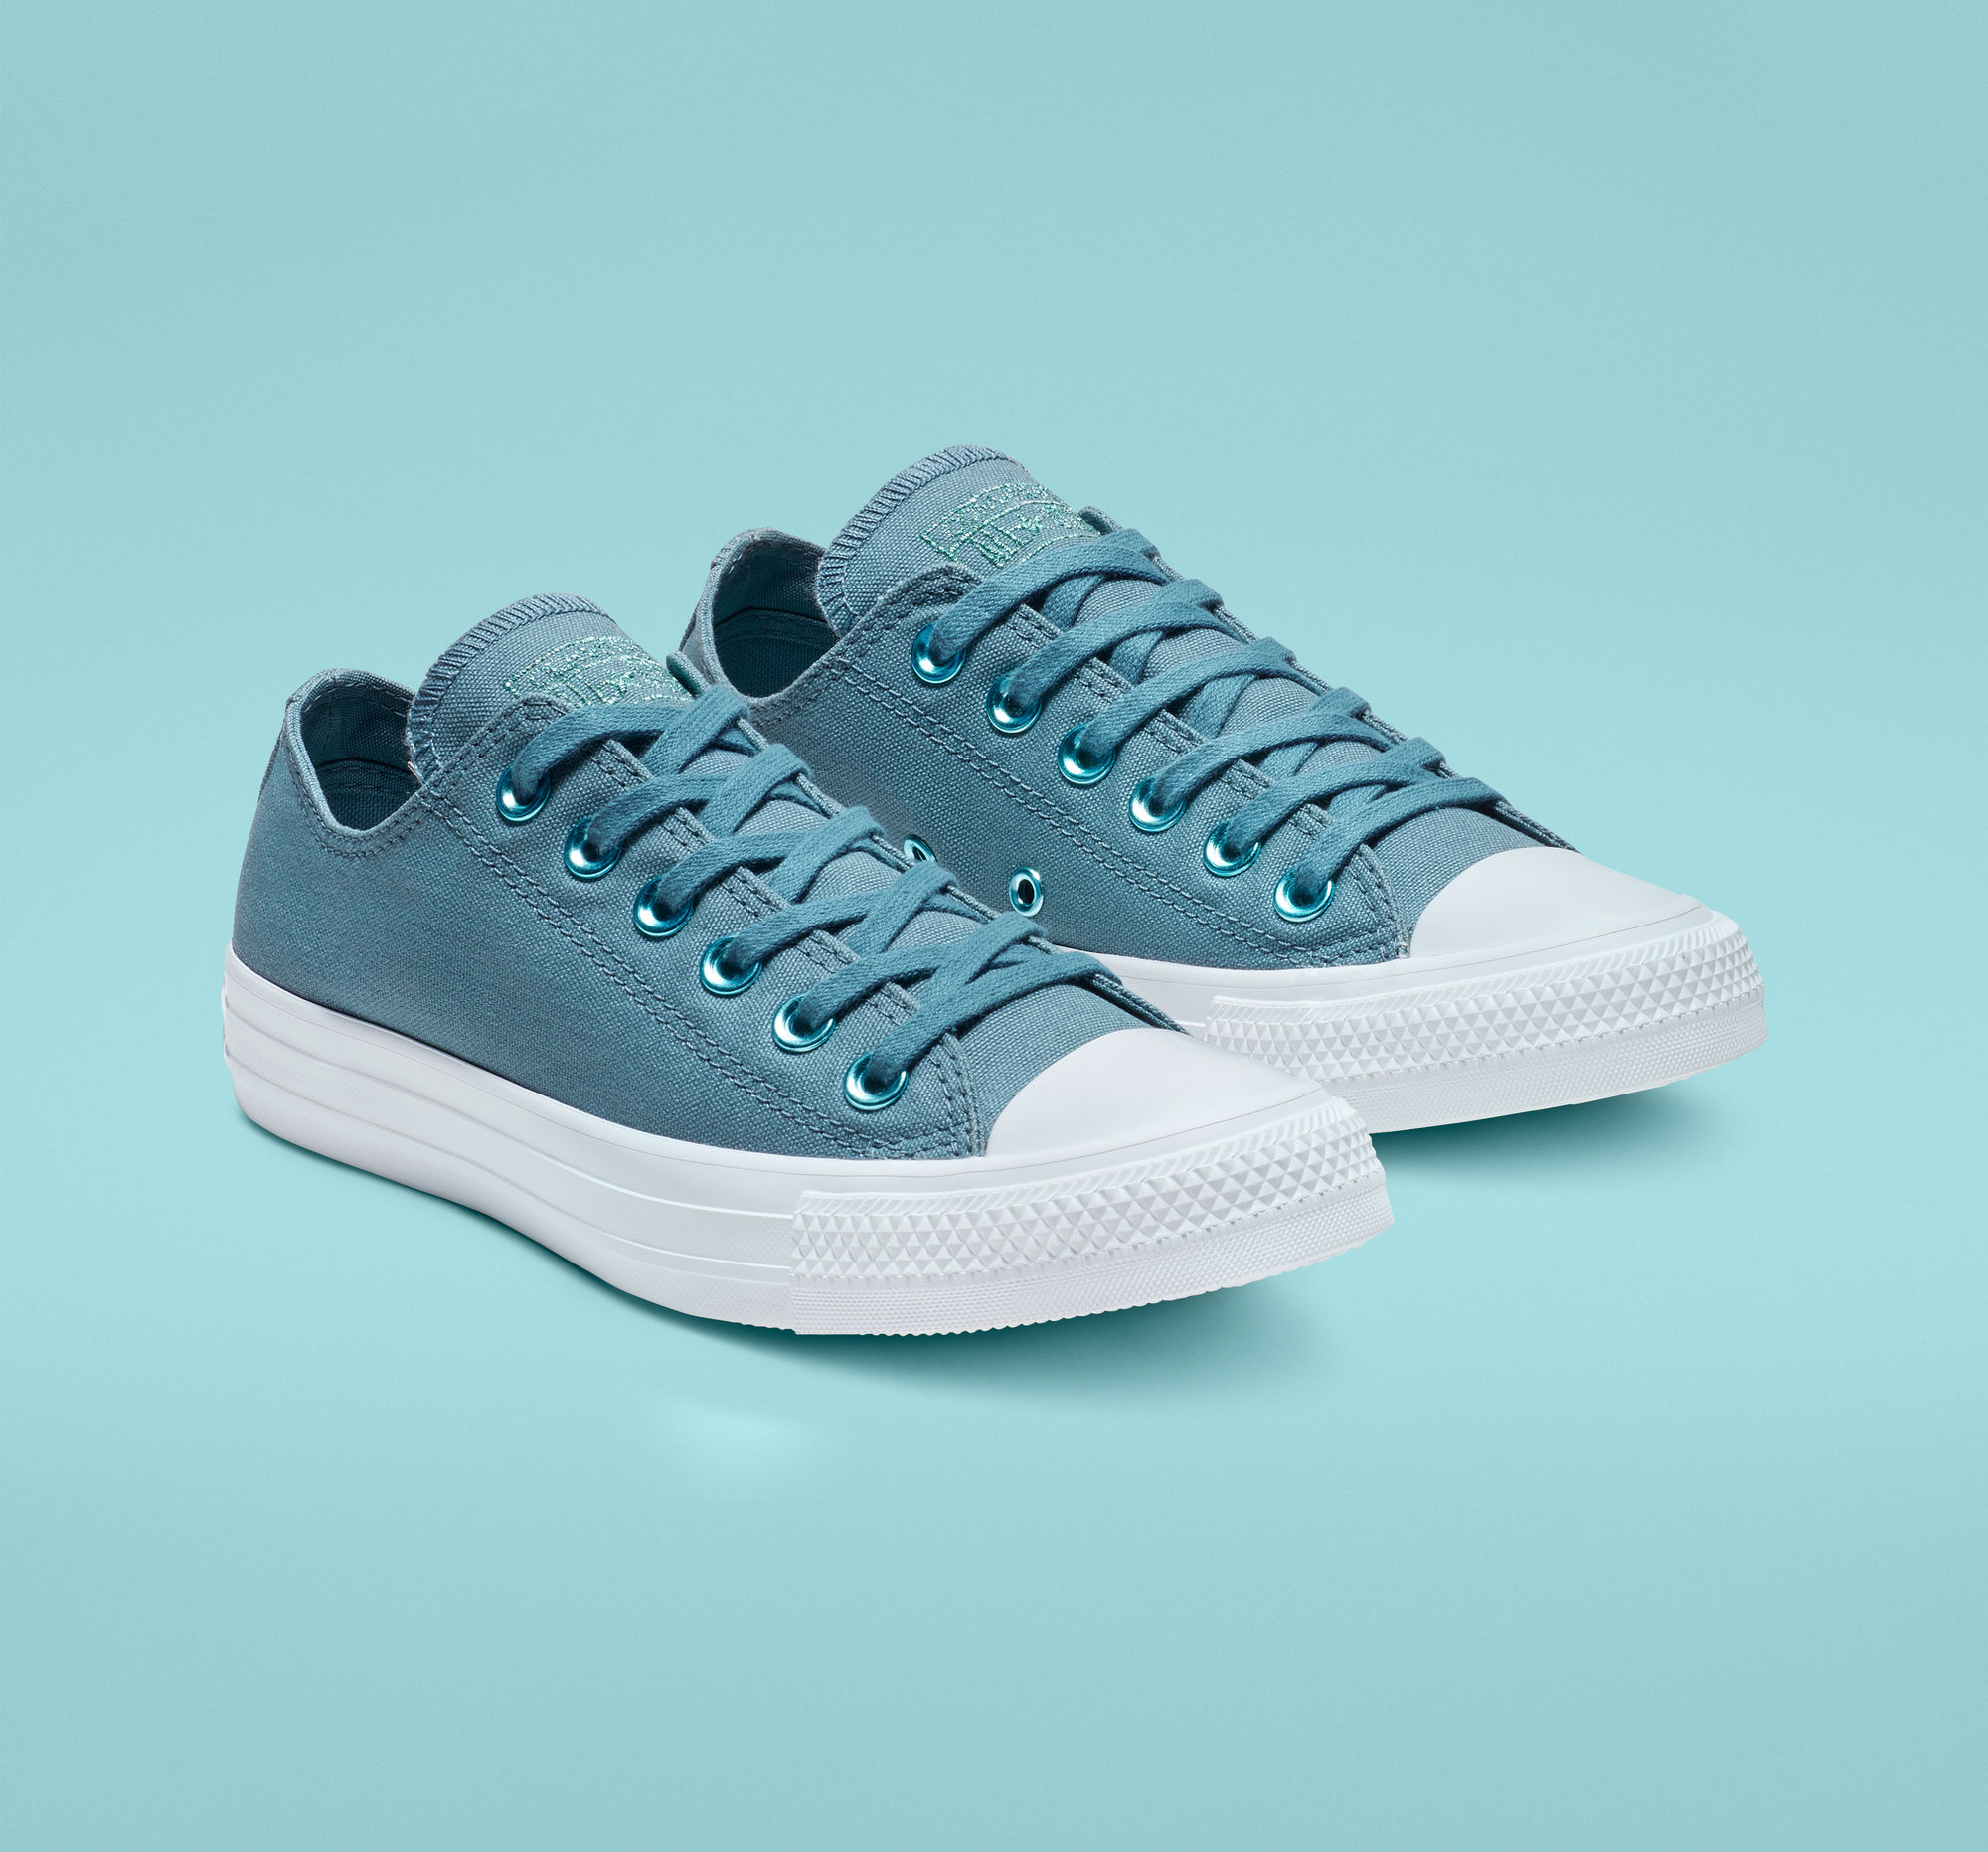 Chuck Taylor All Stars Hearts Low Top in Celestial Teal/Teal Tint/White